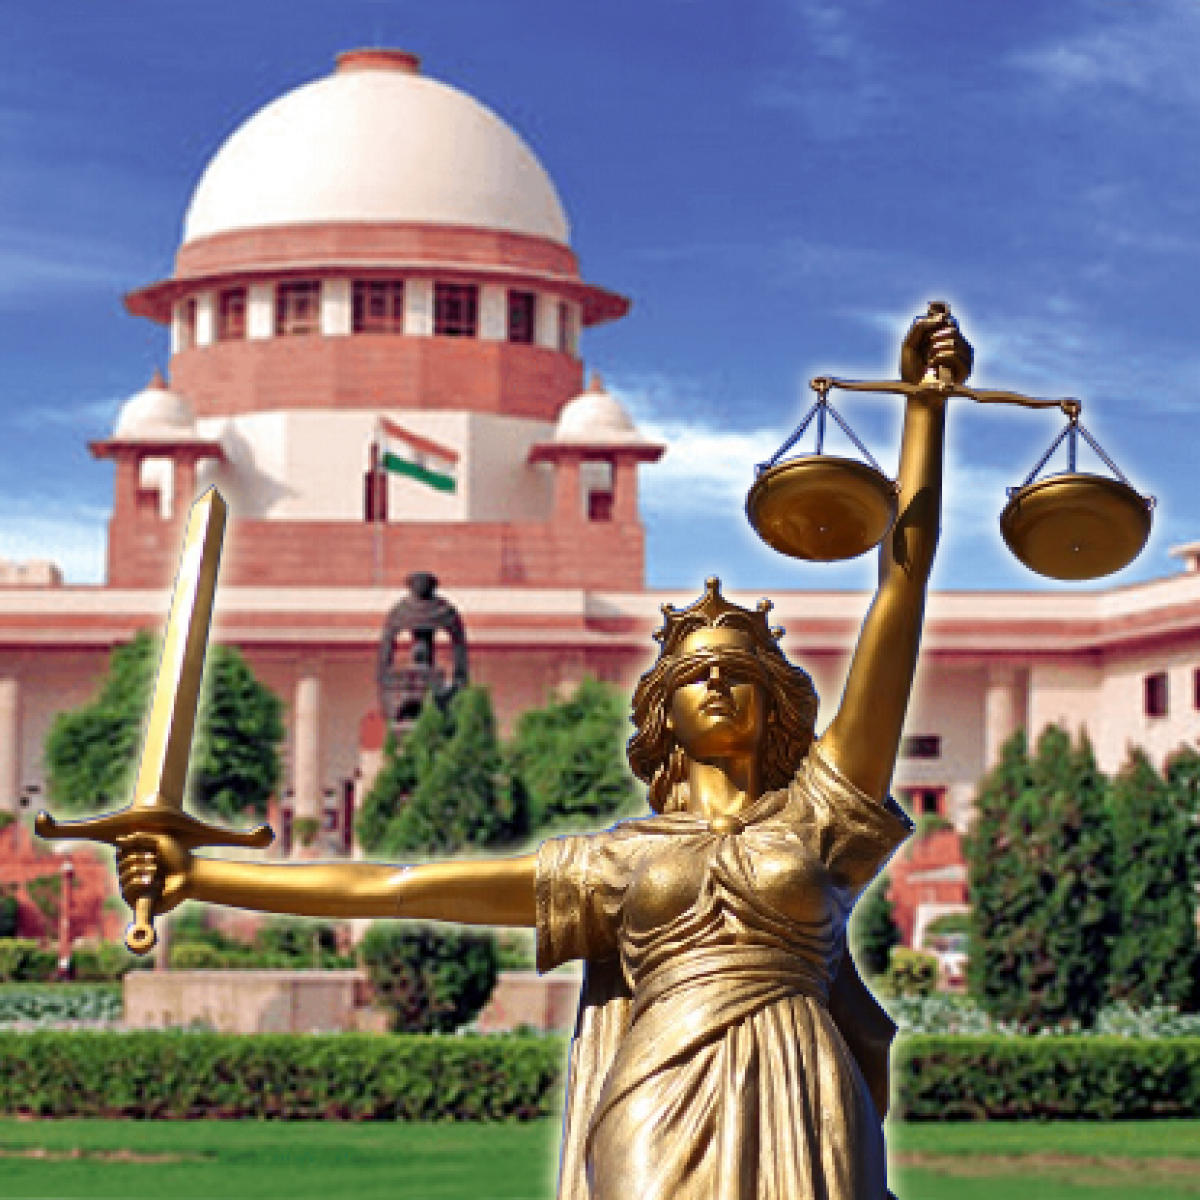 Delay in judicial appointments is perilous